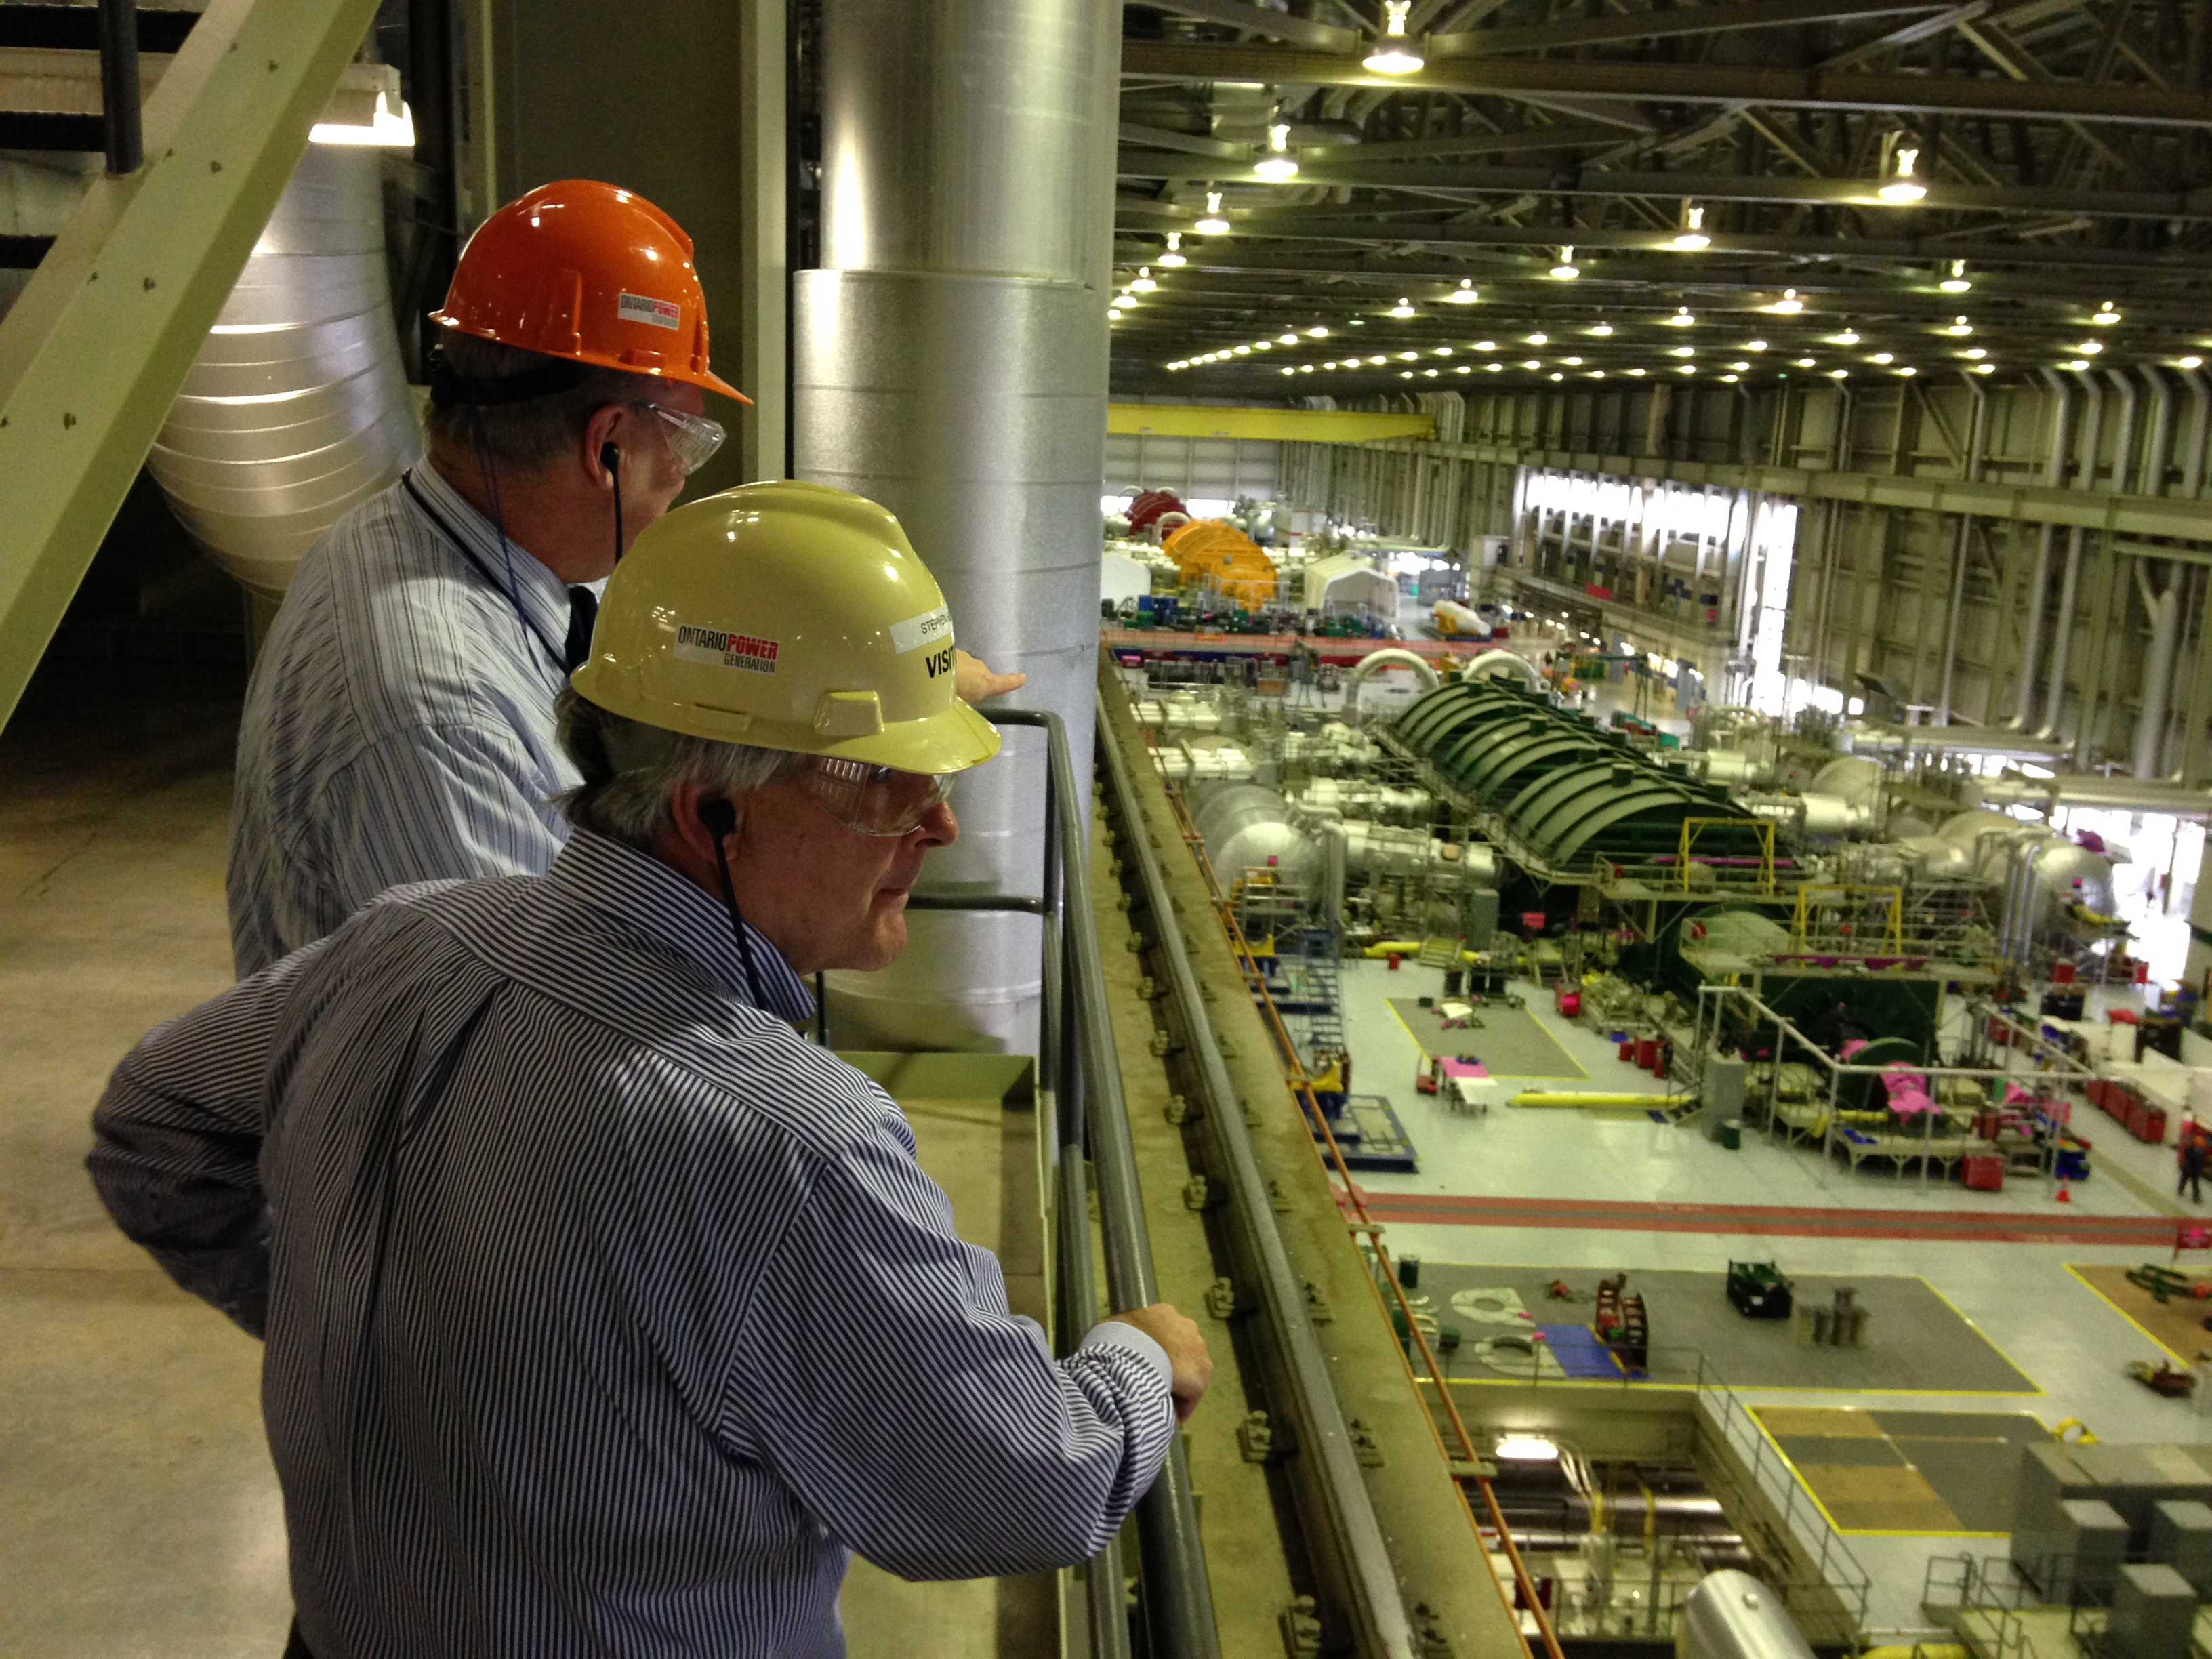 Aree crisi industriale - photo credit: Nuclear Regulatory Commission